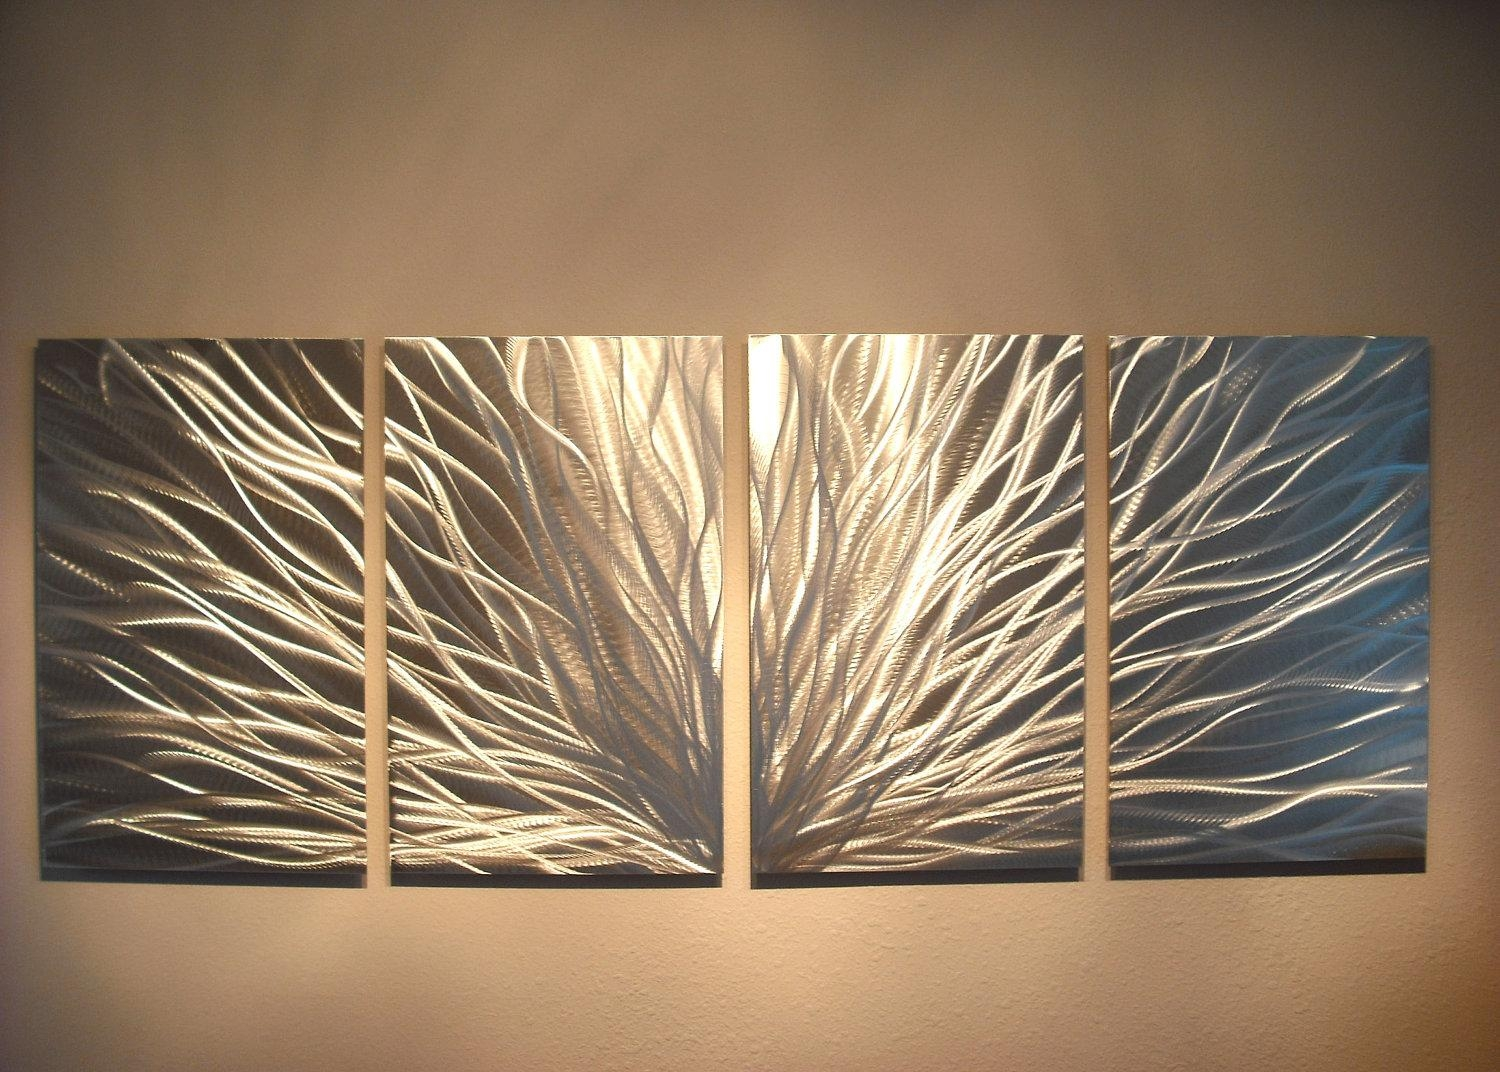 Metal Wall Art Decor Abstract Aluminum Contemporary Modern In Modern Wall Art Uk (Image 15 of 20)